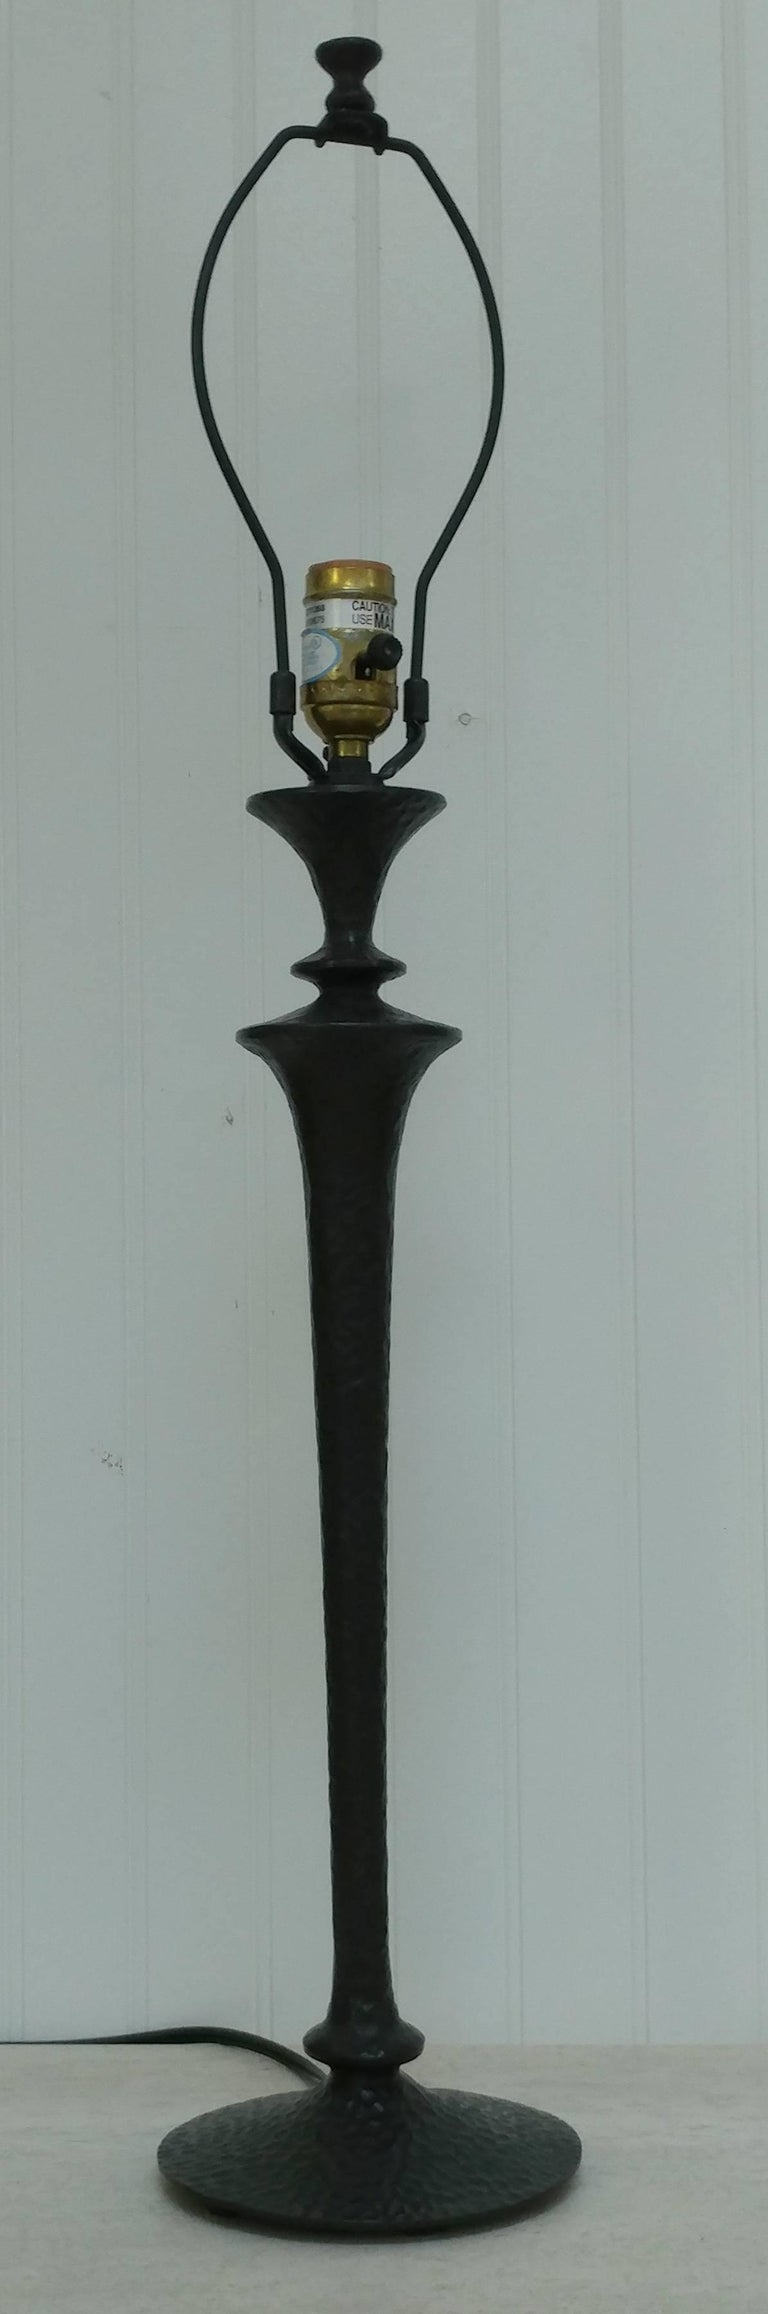 European Giacometti Style Hammered Painted Bronze Table Lamp, Offered by La Porte For Sale